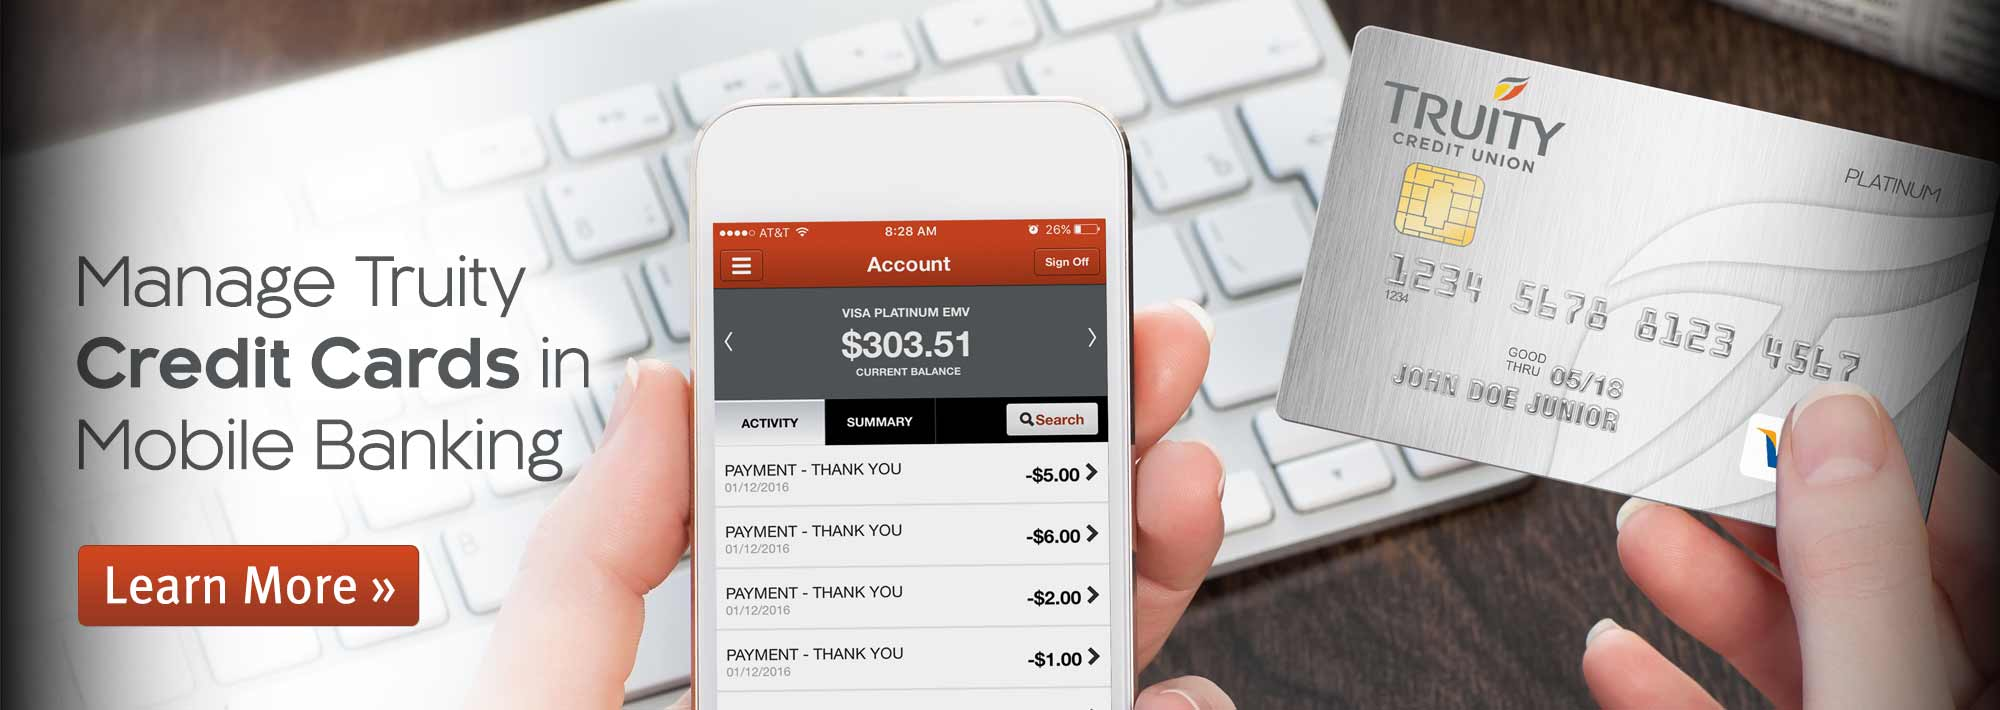 Manage Truity Credit Cards in Mobile Banking